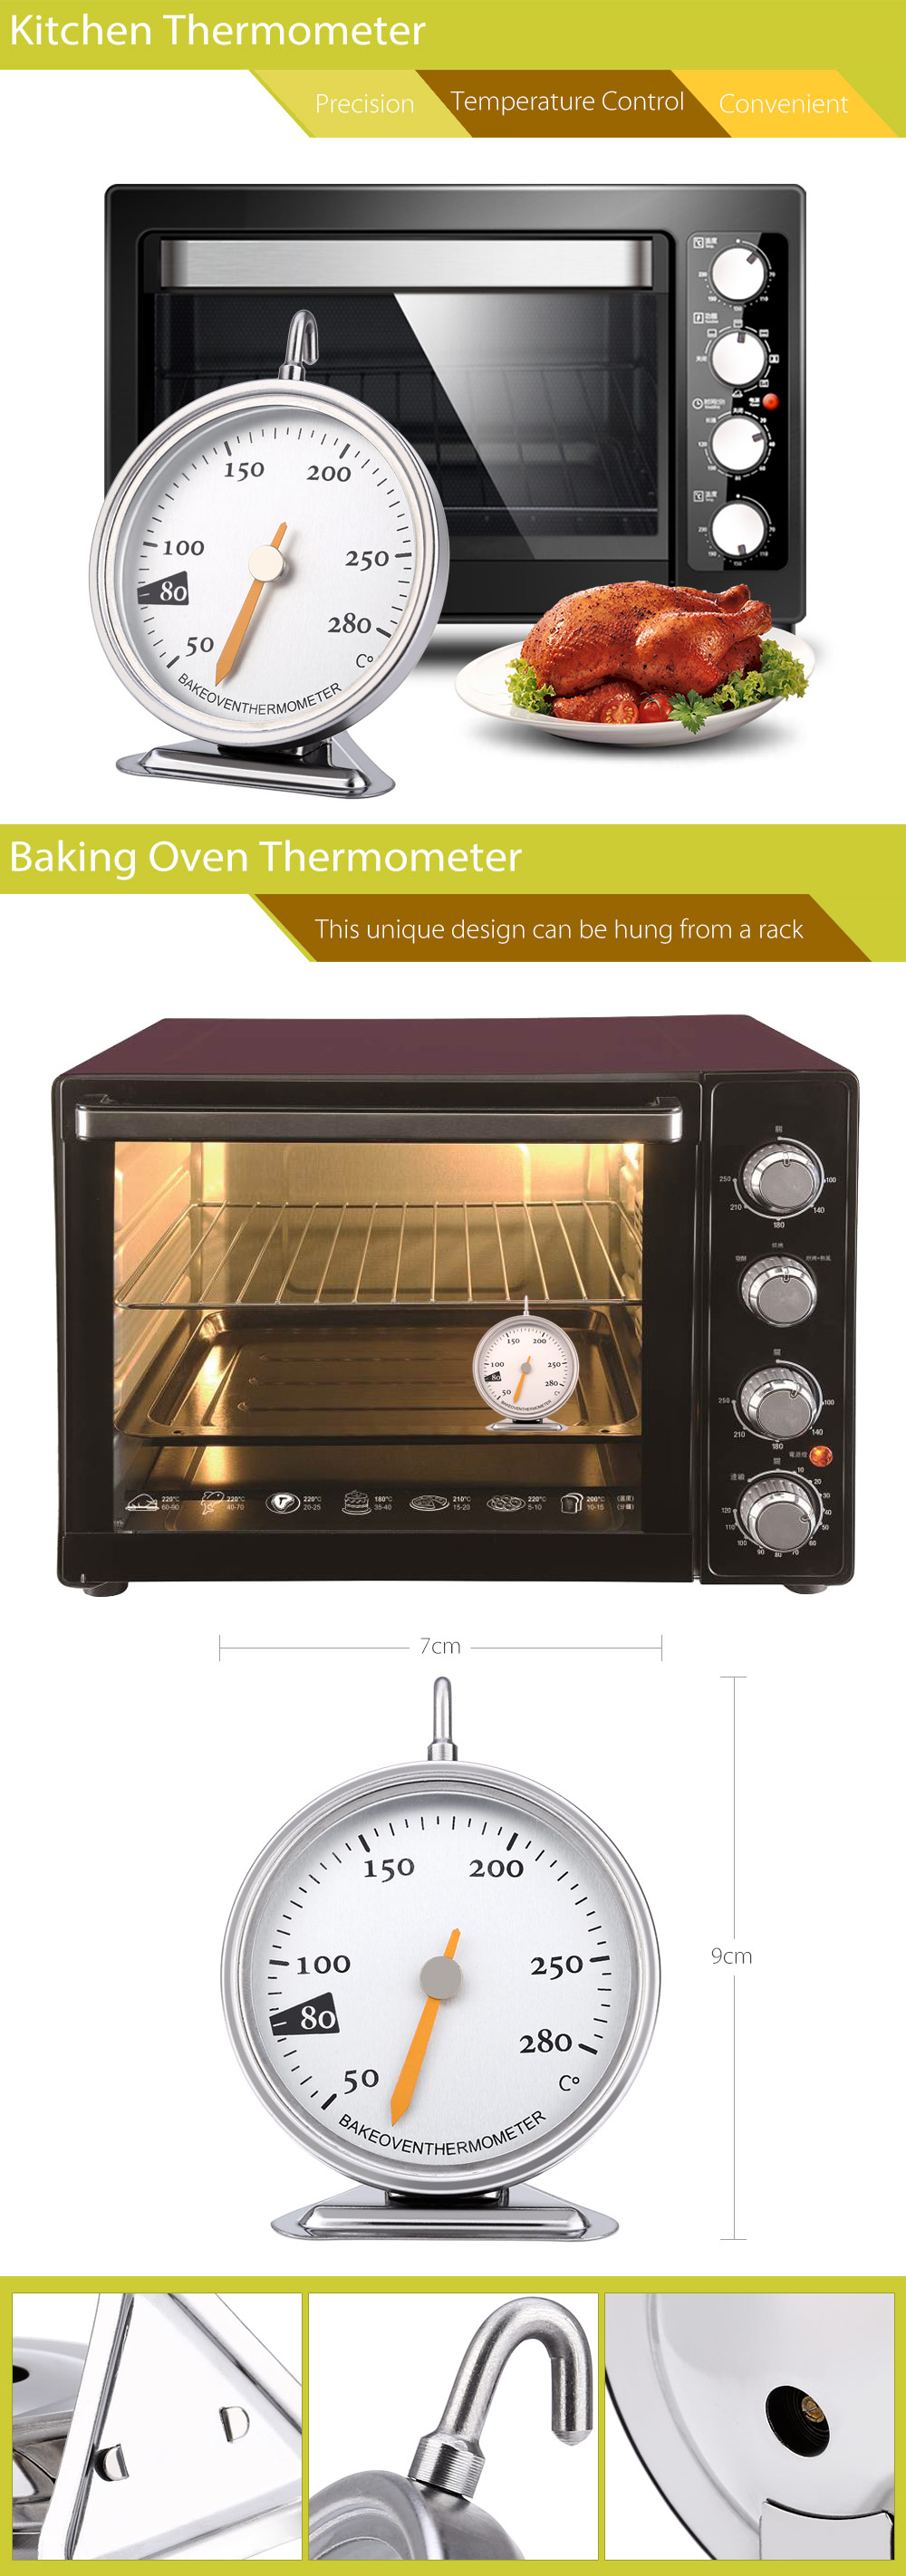 Stainless Steel Mechanical Baking Oven Thermometer Bakeware 50 - 280 Degree Celsius